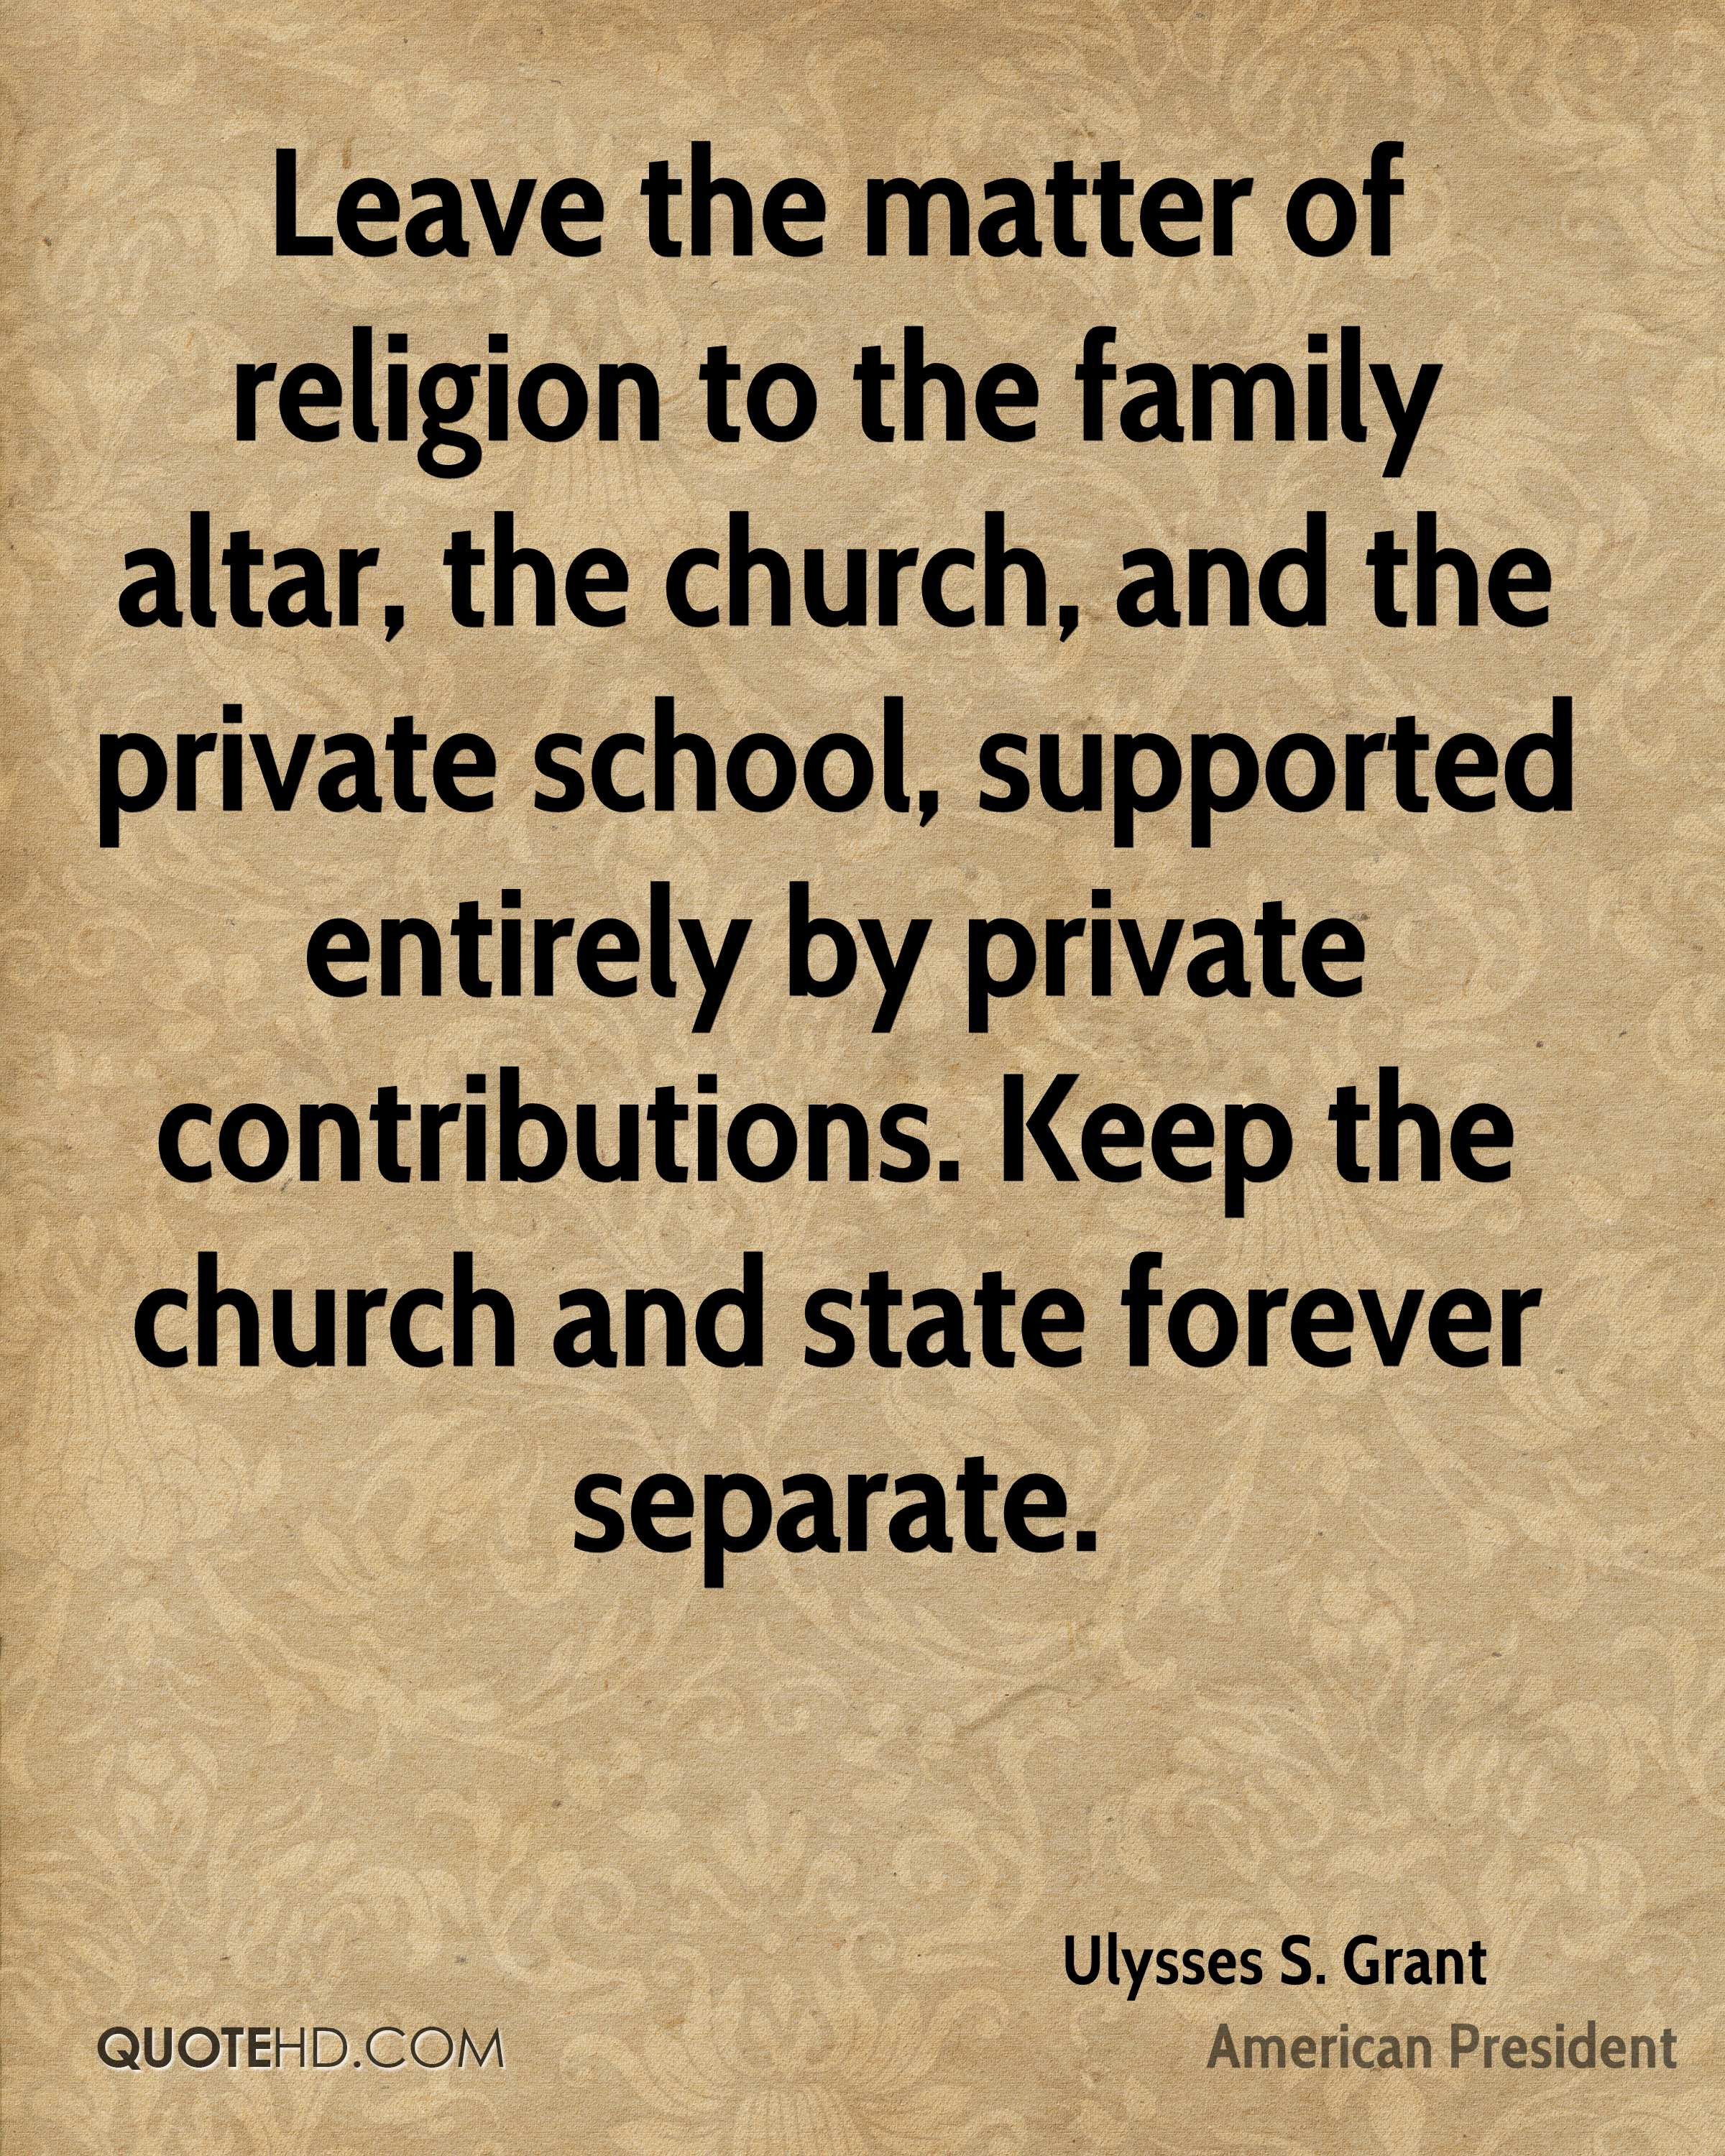 Leave the matter of religion to the family altar, the church, and the private school, supported entirely by private contributions. Keep the church and state forever separate.